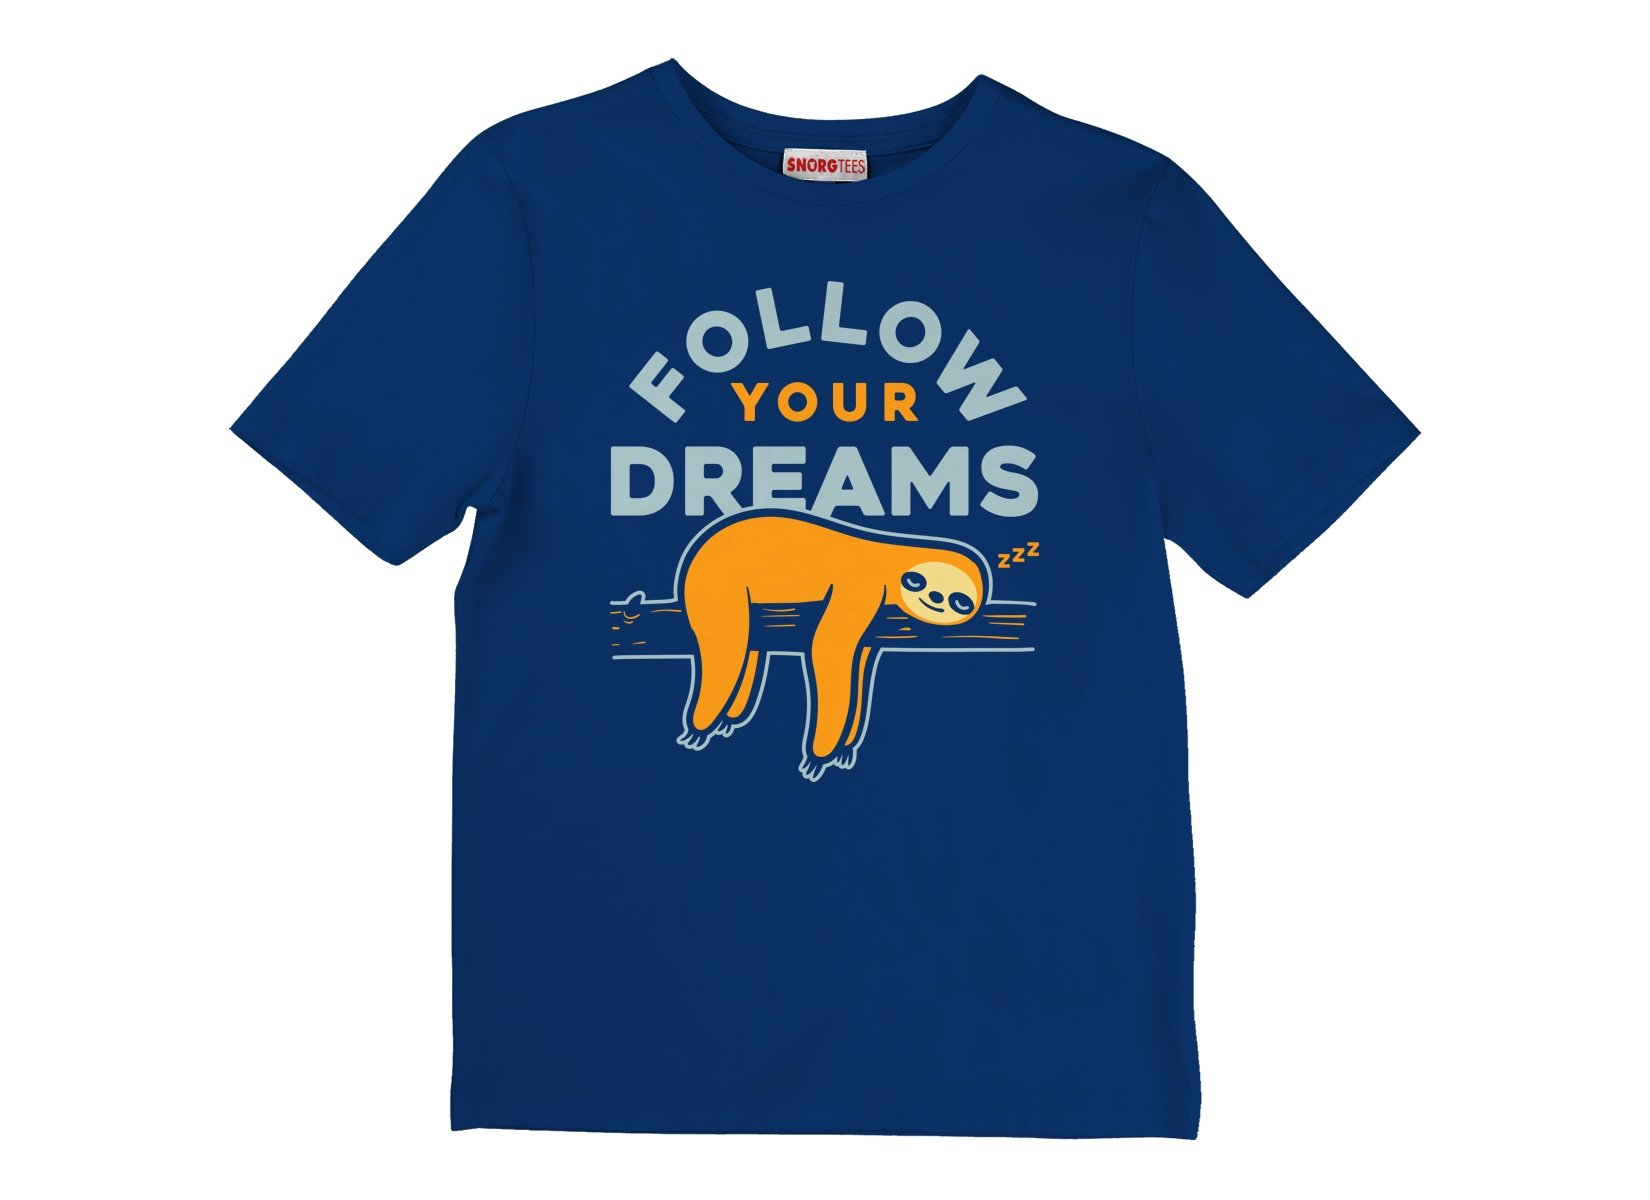 Follow Your Dreams on Kids T-Shirt